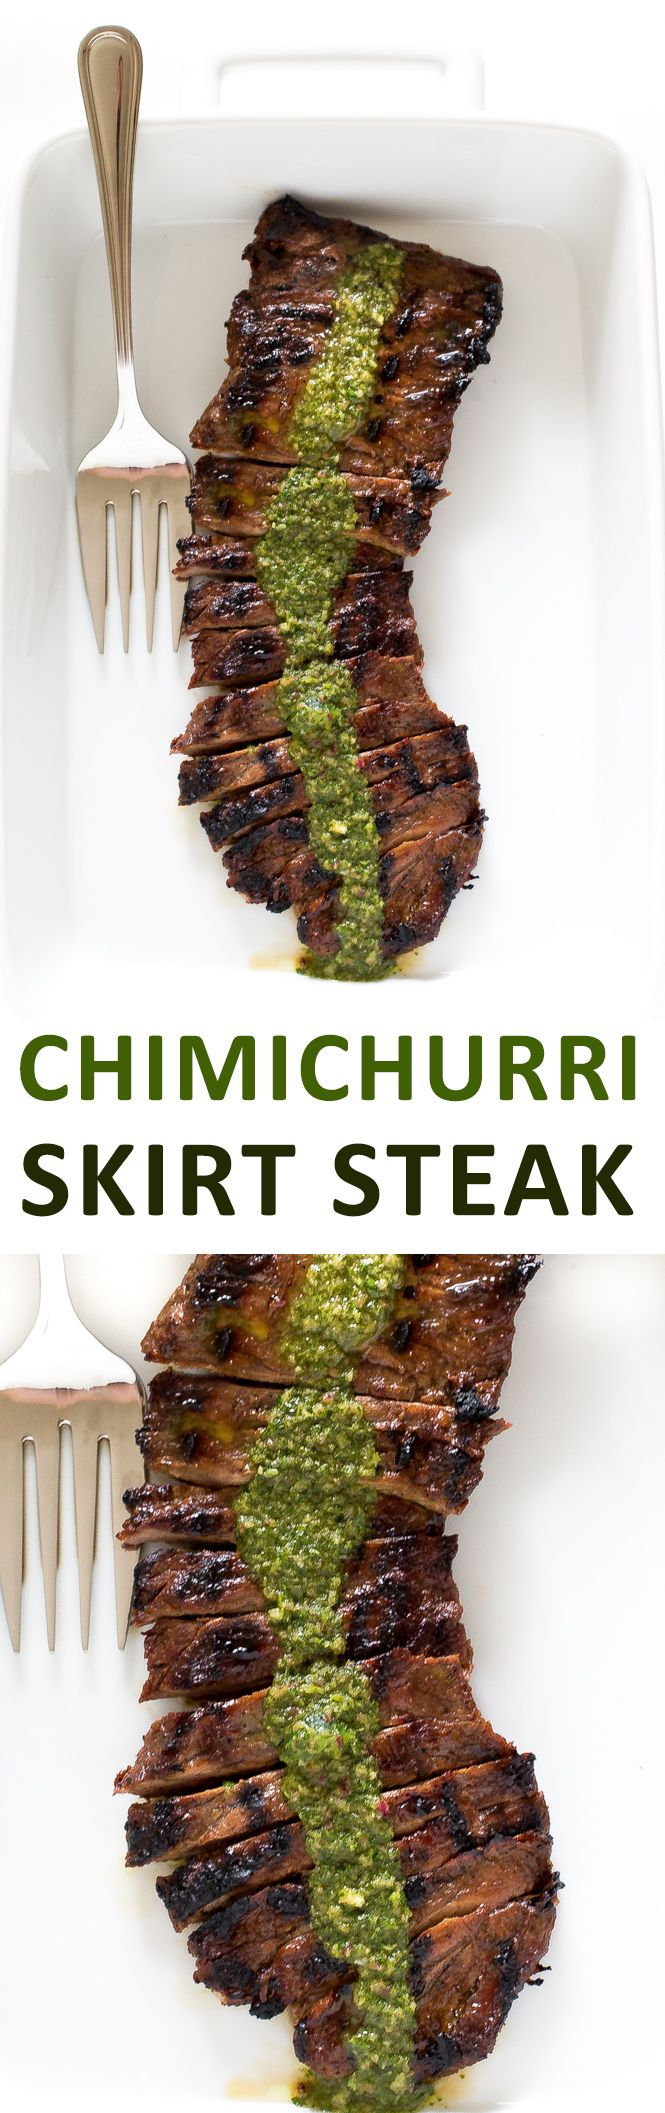 Super tender Skirt Steak with Chimichurri Sauce. The perfect summer meal! | chefsavvy.com #recipe #dinner #grilled #skirt #steak #chimichurri